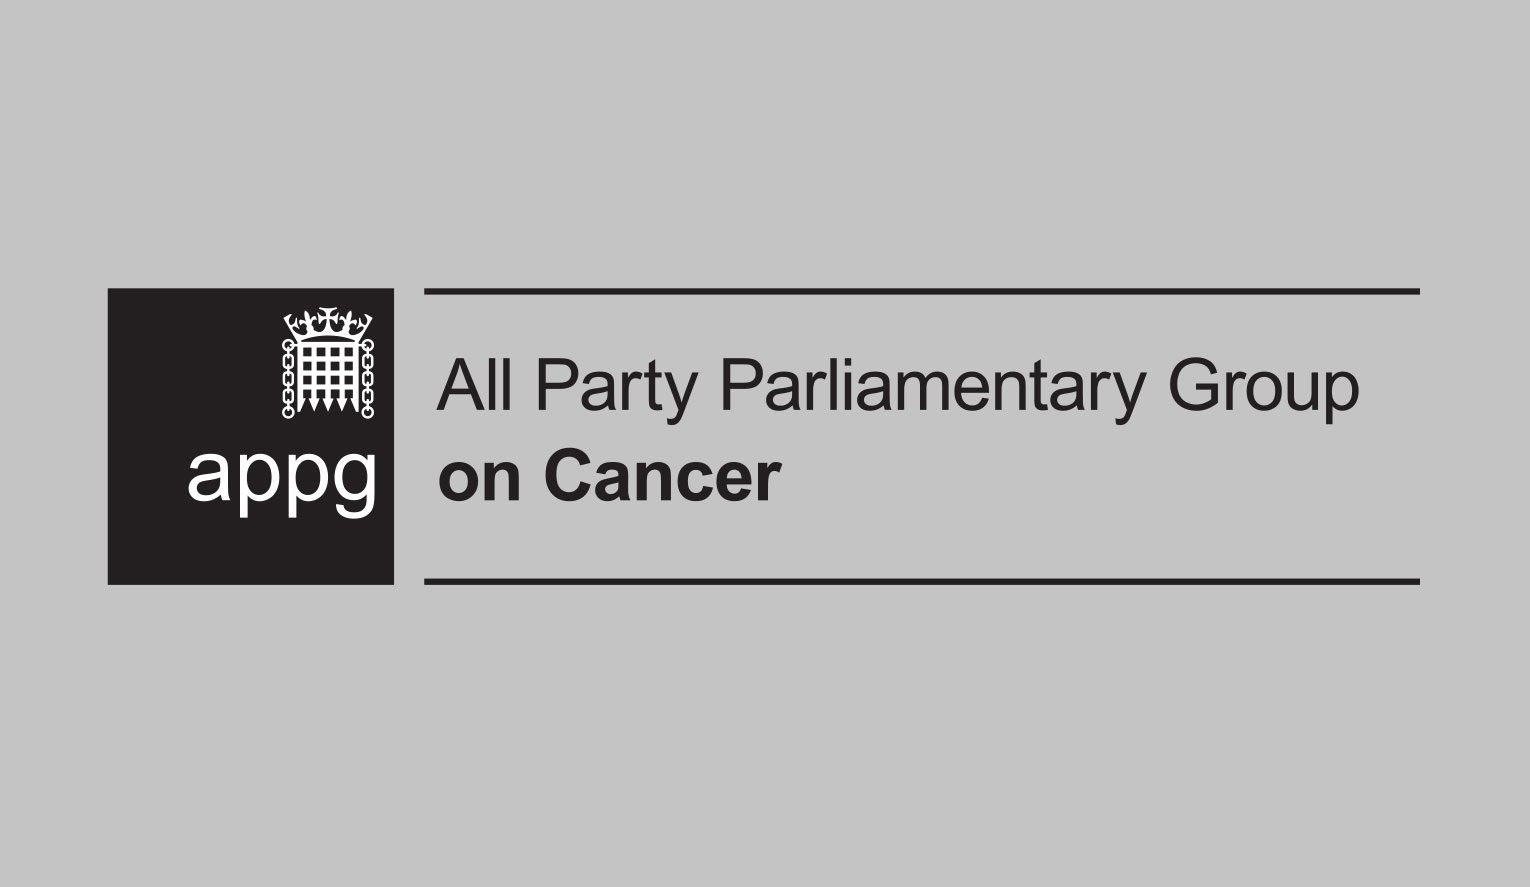 New brand logo created for the APPG on Cancer